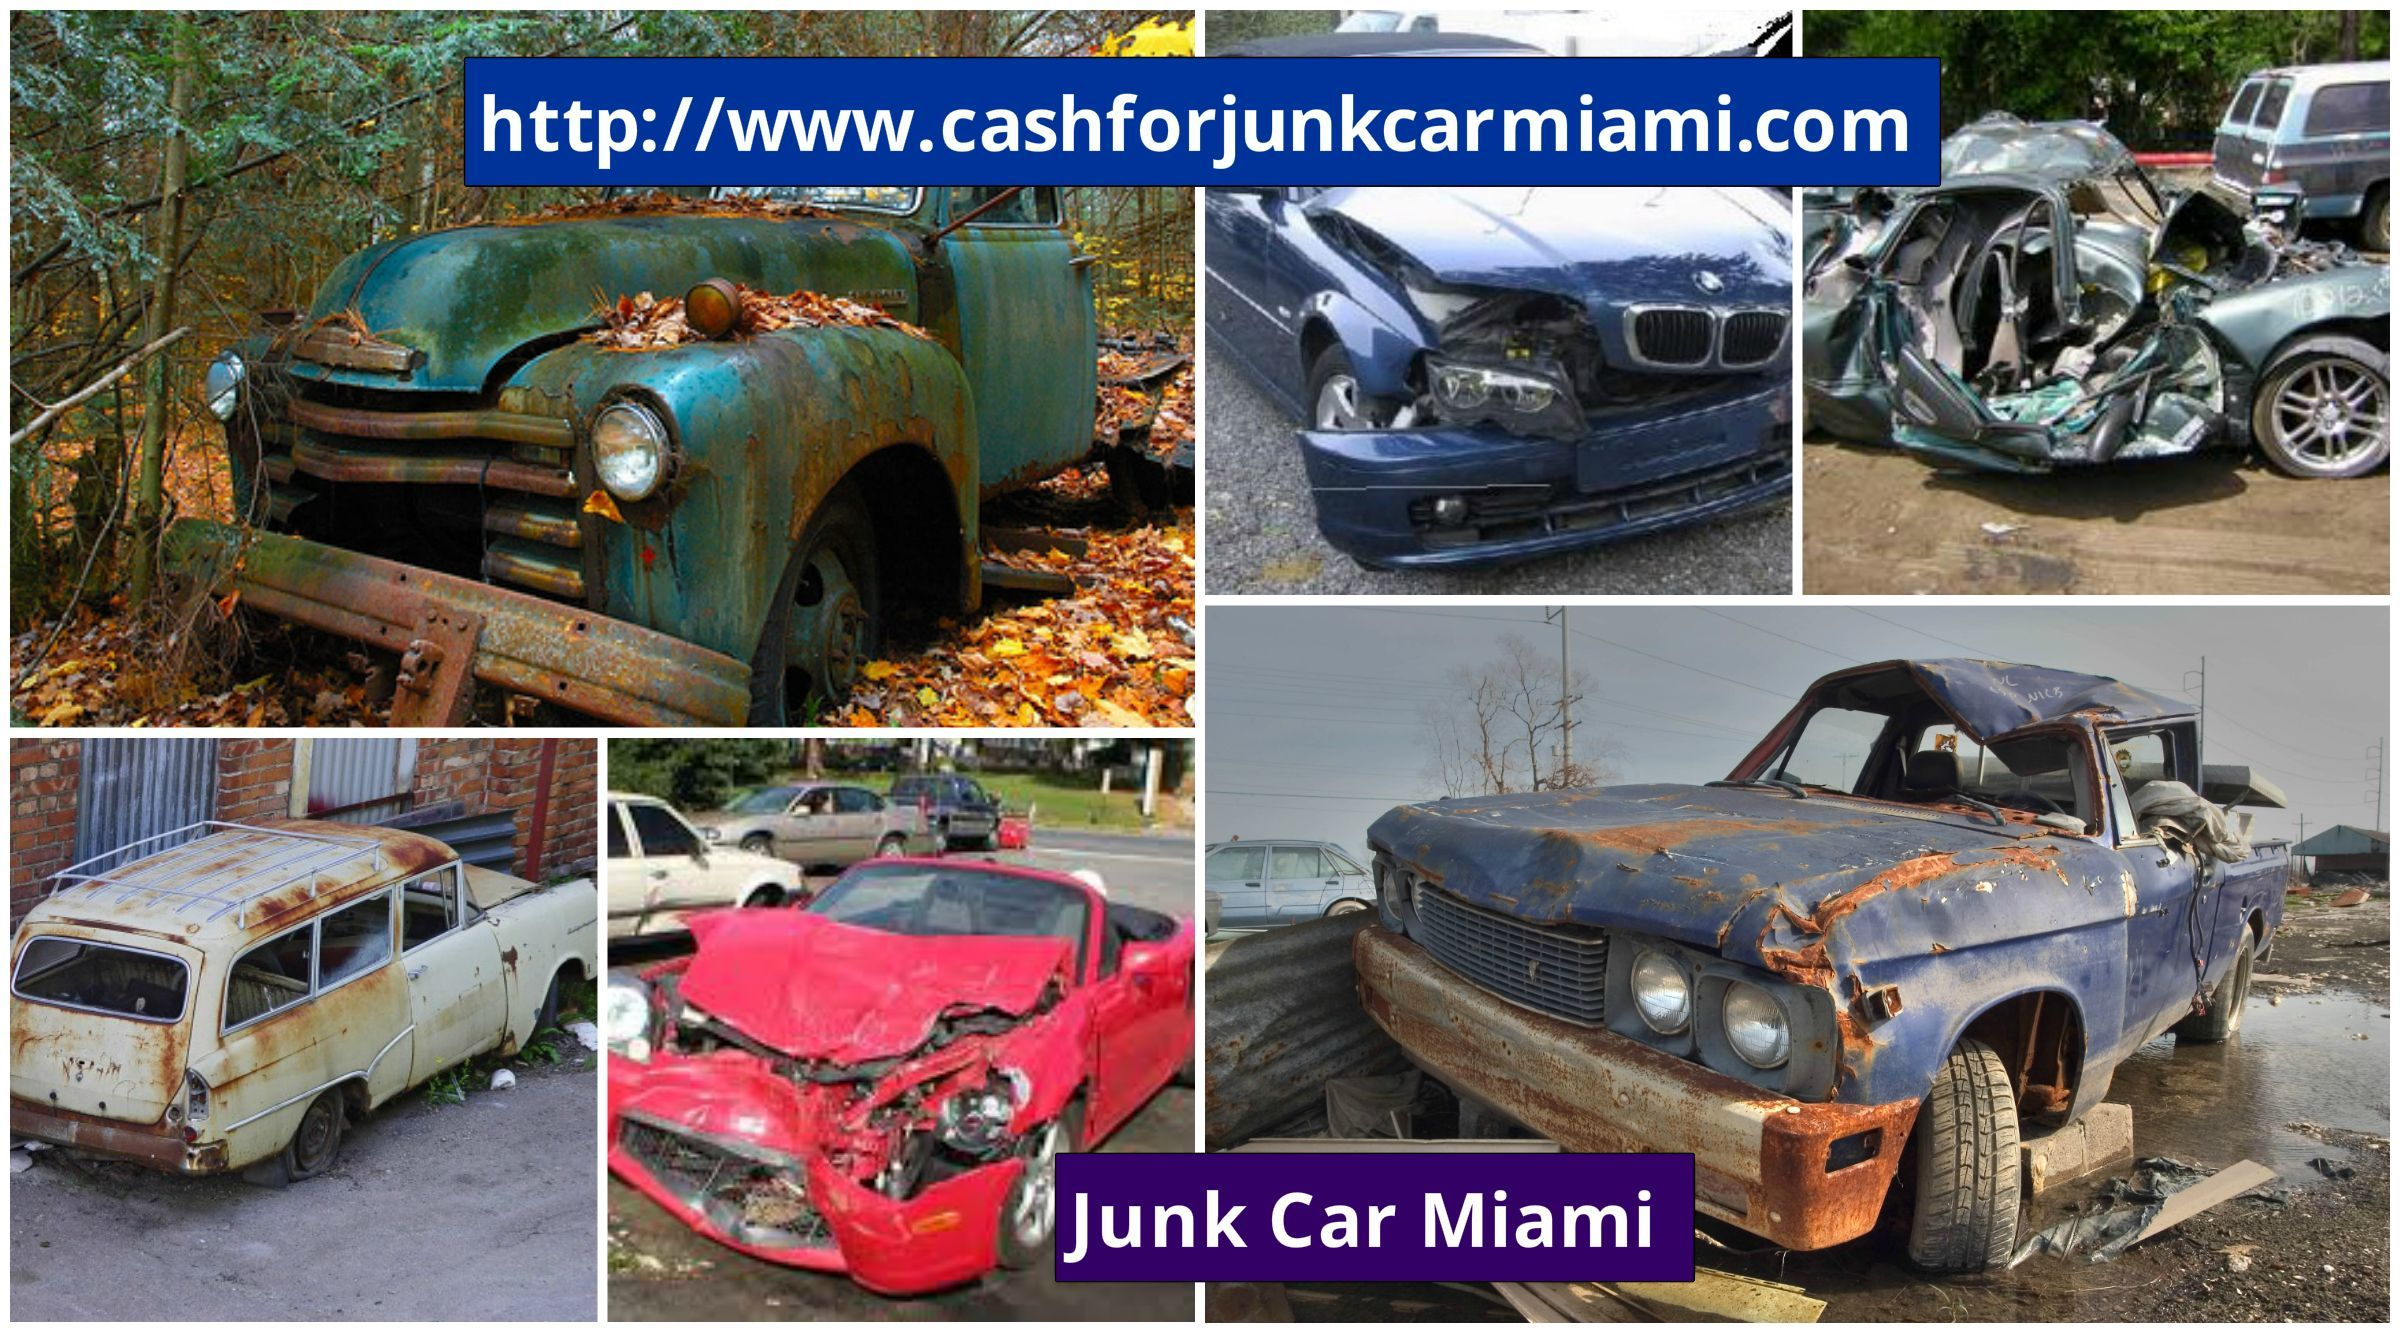 http://www.cashforjunkcarmiami.com Junk car Miami services helps ...